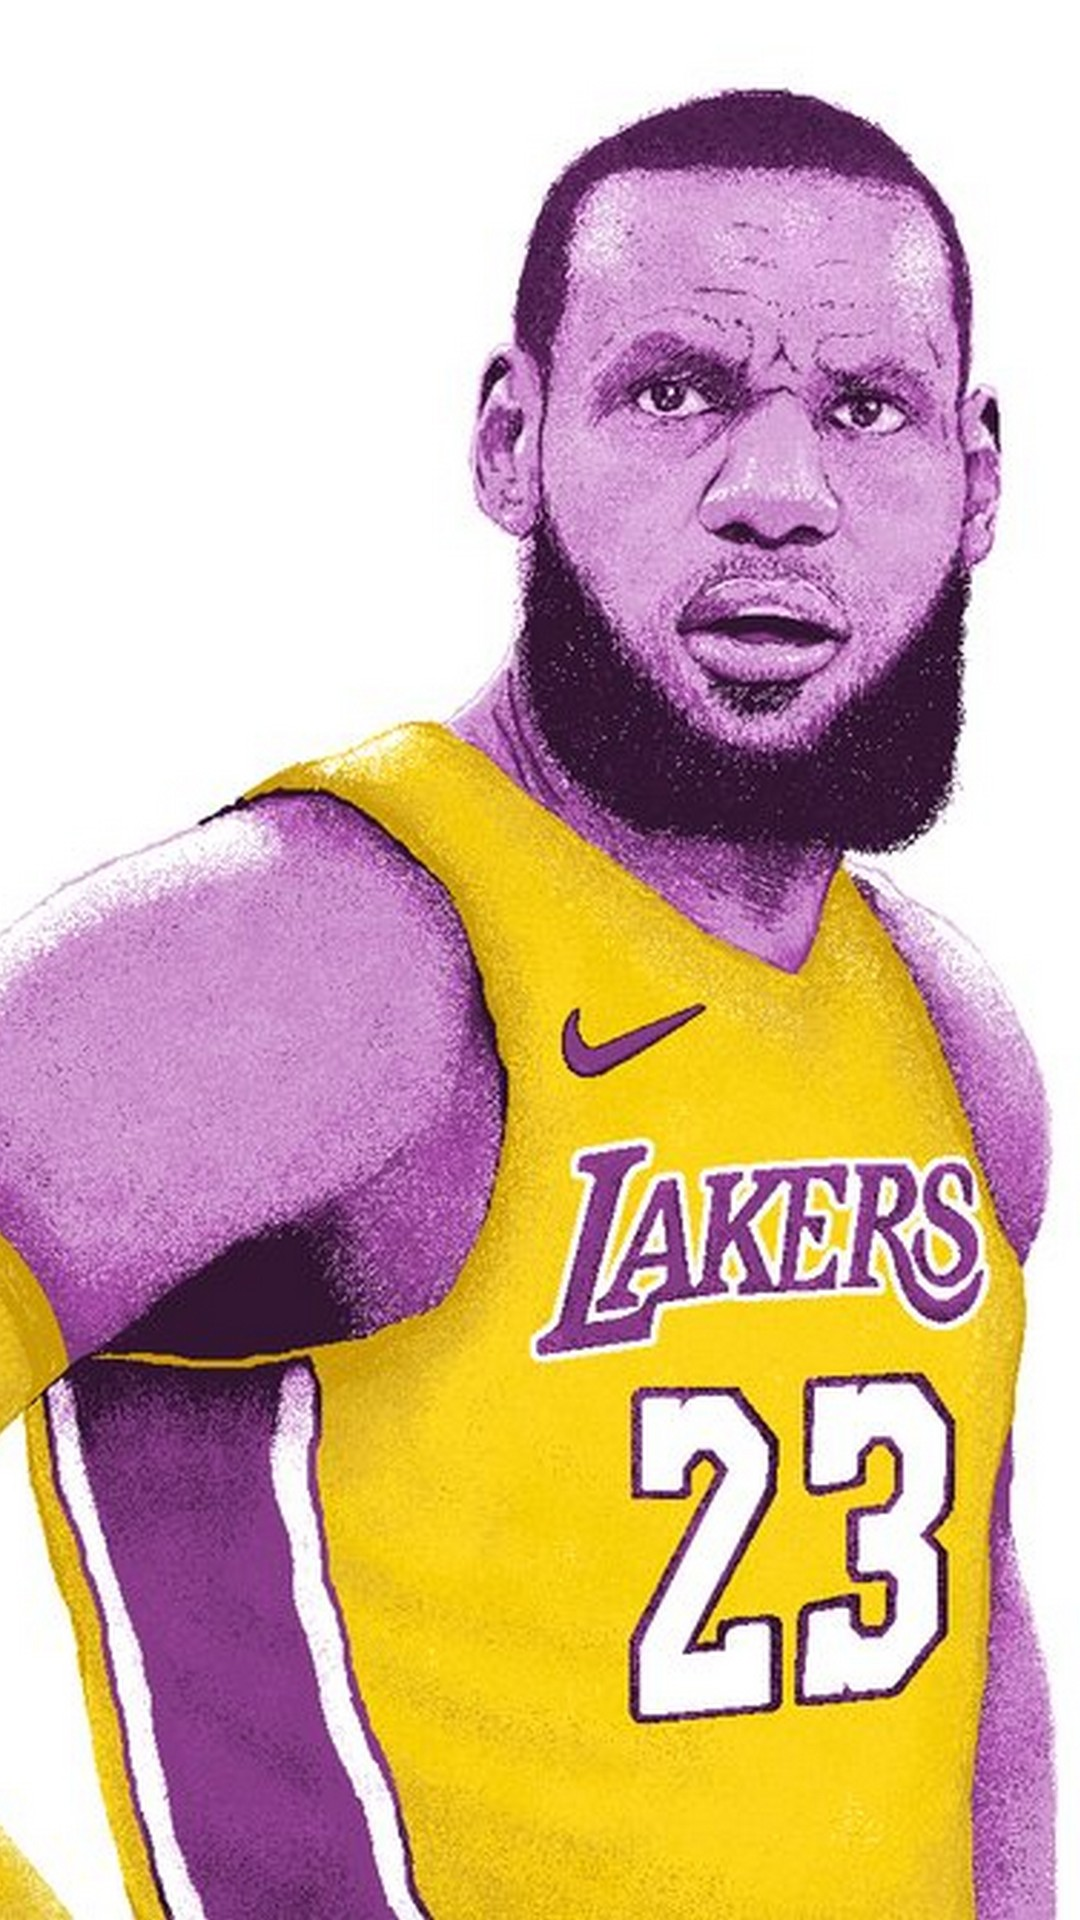 Wallpaper Lebron James La Lakers Iphone With High-resolution - Lebron Wallpaper Iphone Lakers , HD Wallpaper & Backgrounds